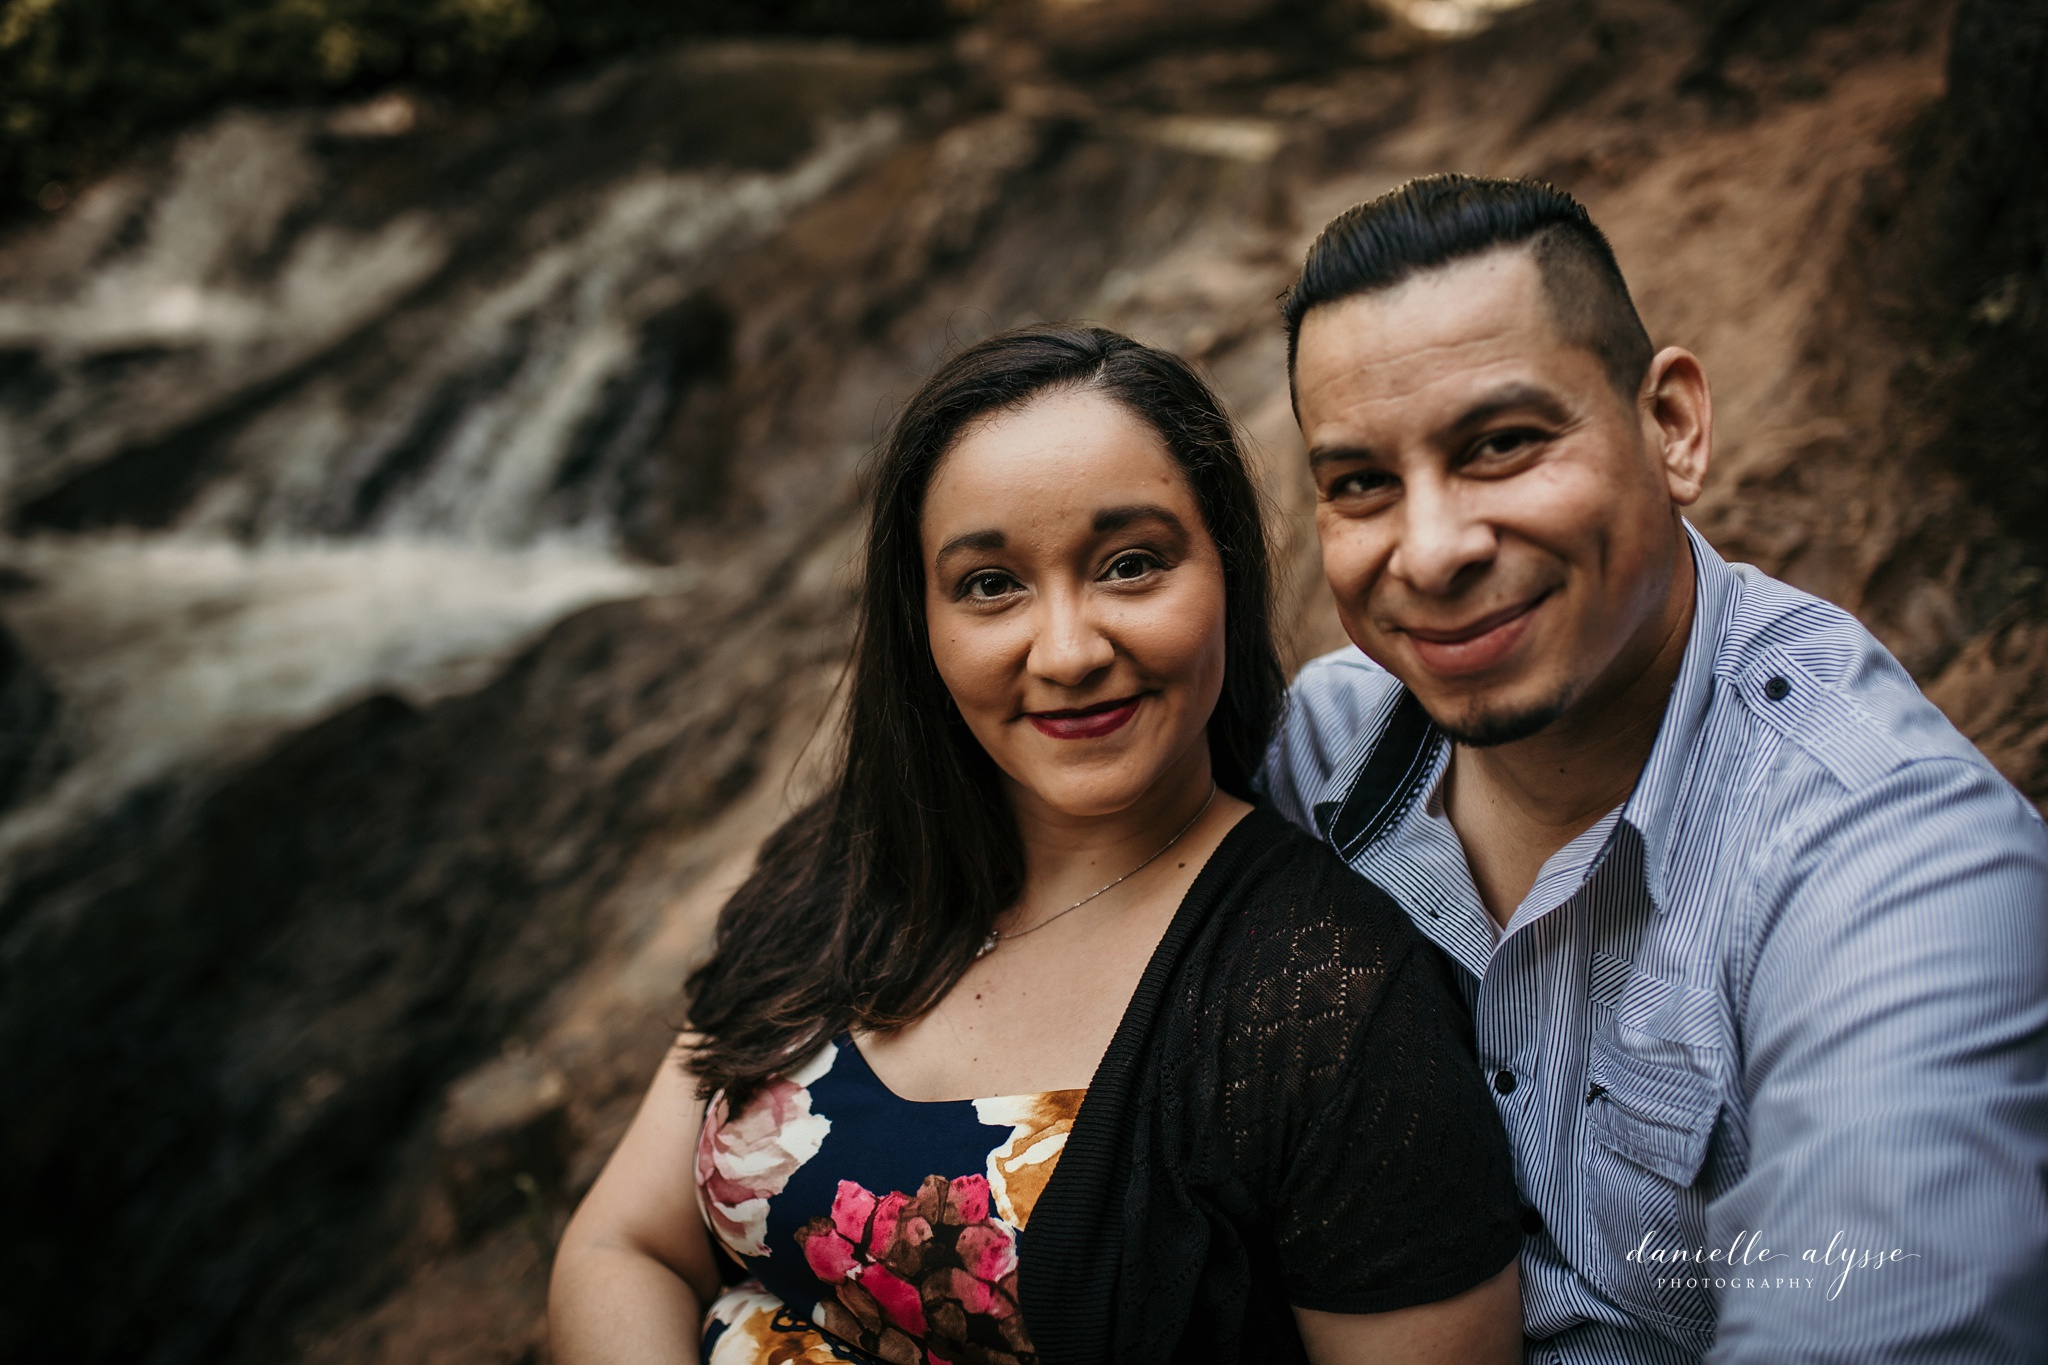 180425_engagement_monica_auburn_water_falls_auburn_danielle_alysse_photography_sacramento_photographer_blog_15_WEB.jpg